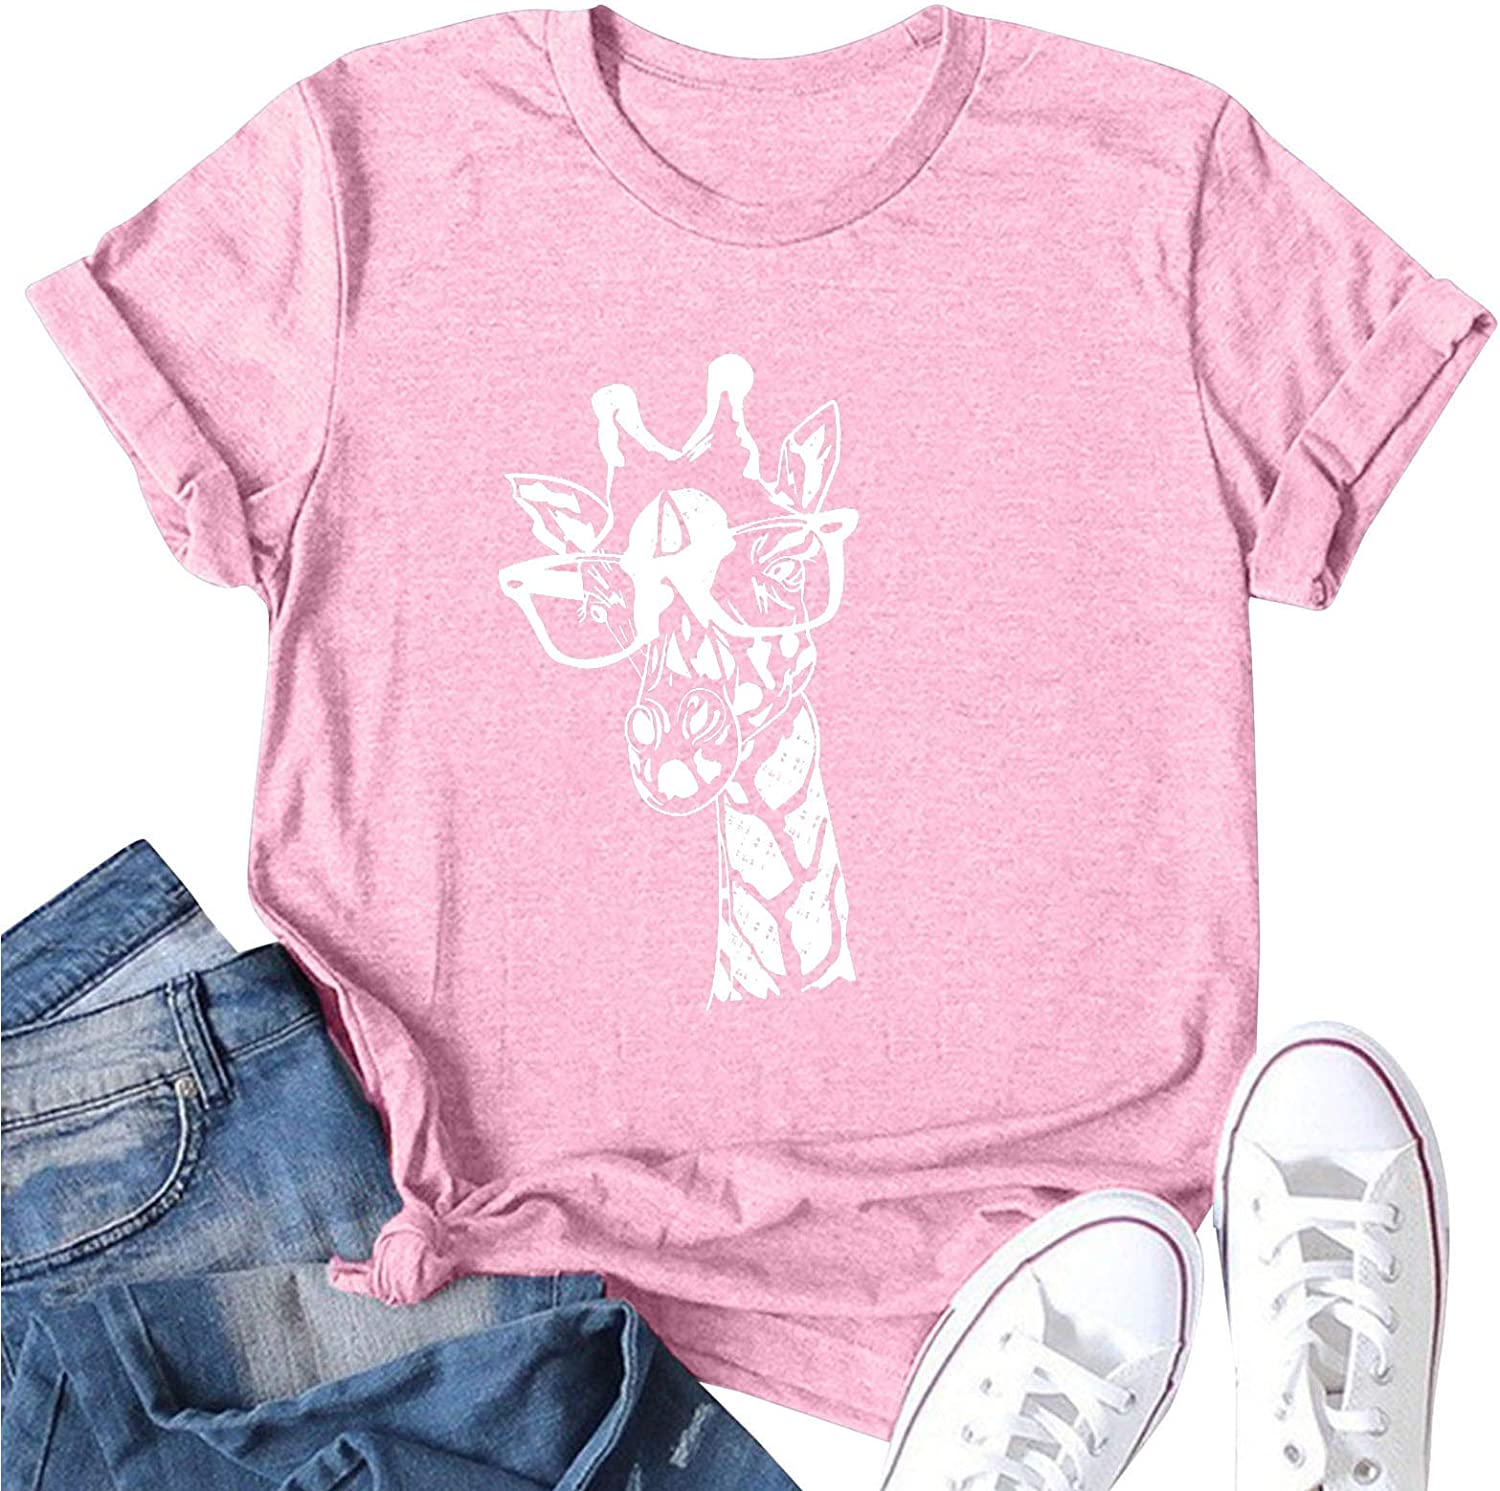 Aukbays Womens Short Sleeve Tops Loose Fit Graphic Funny 3D Donkey Printed Crewneck Tshirt Athletic Cute Tees